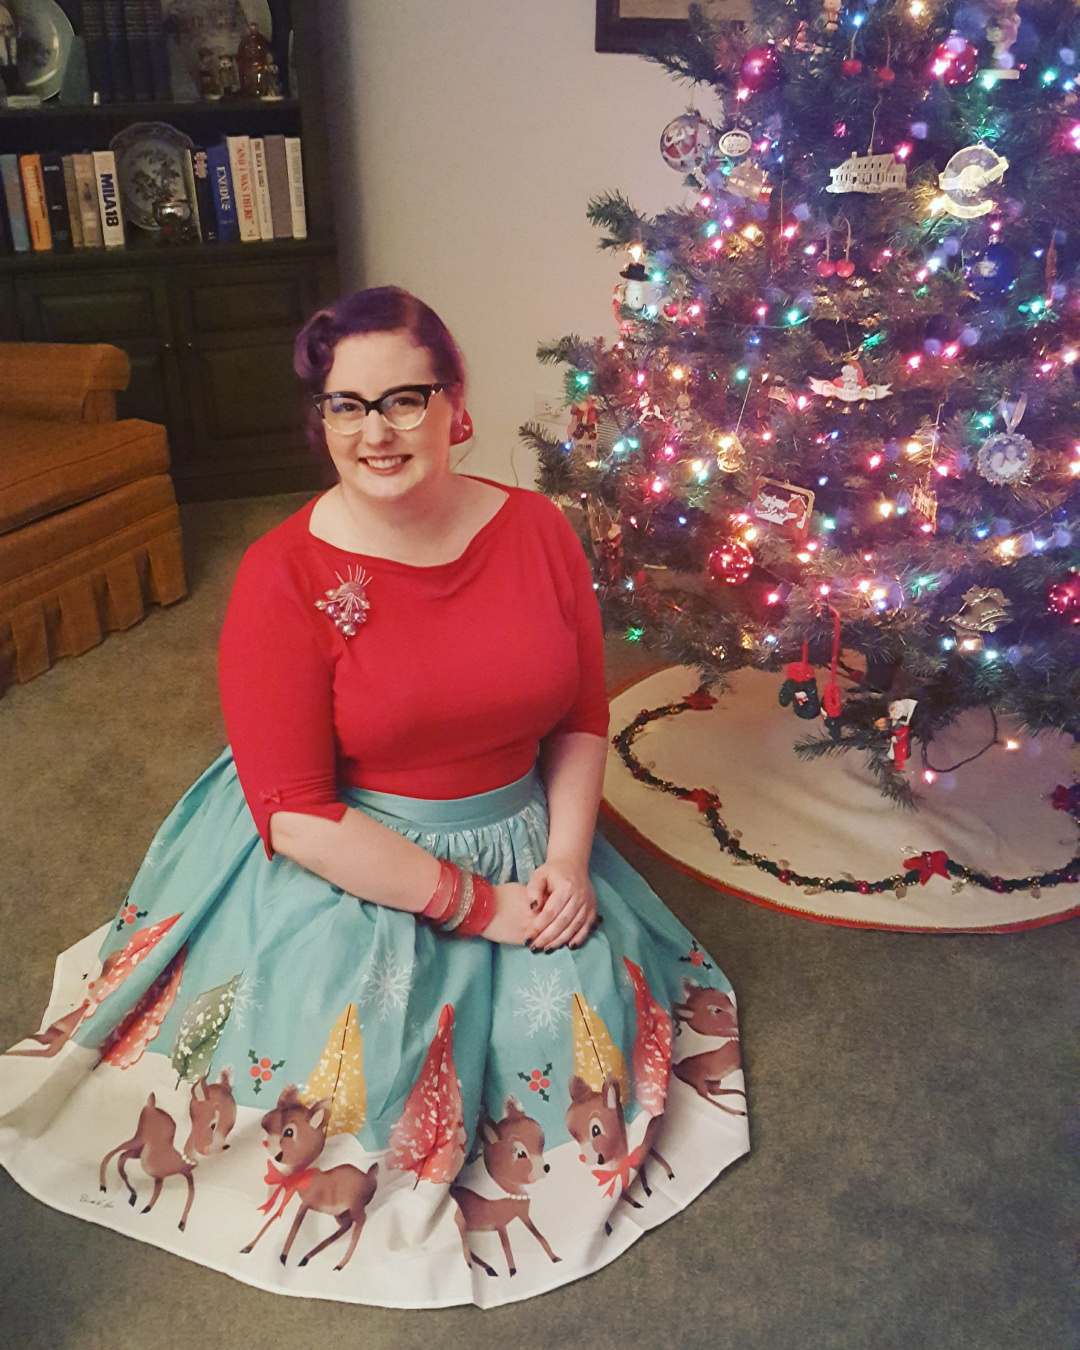 dressed in holiday style